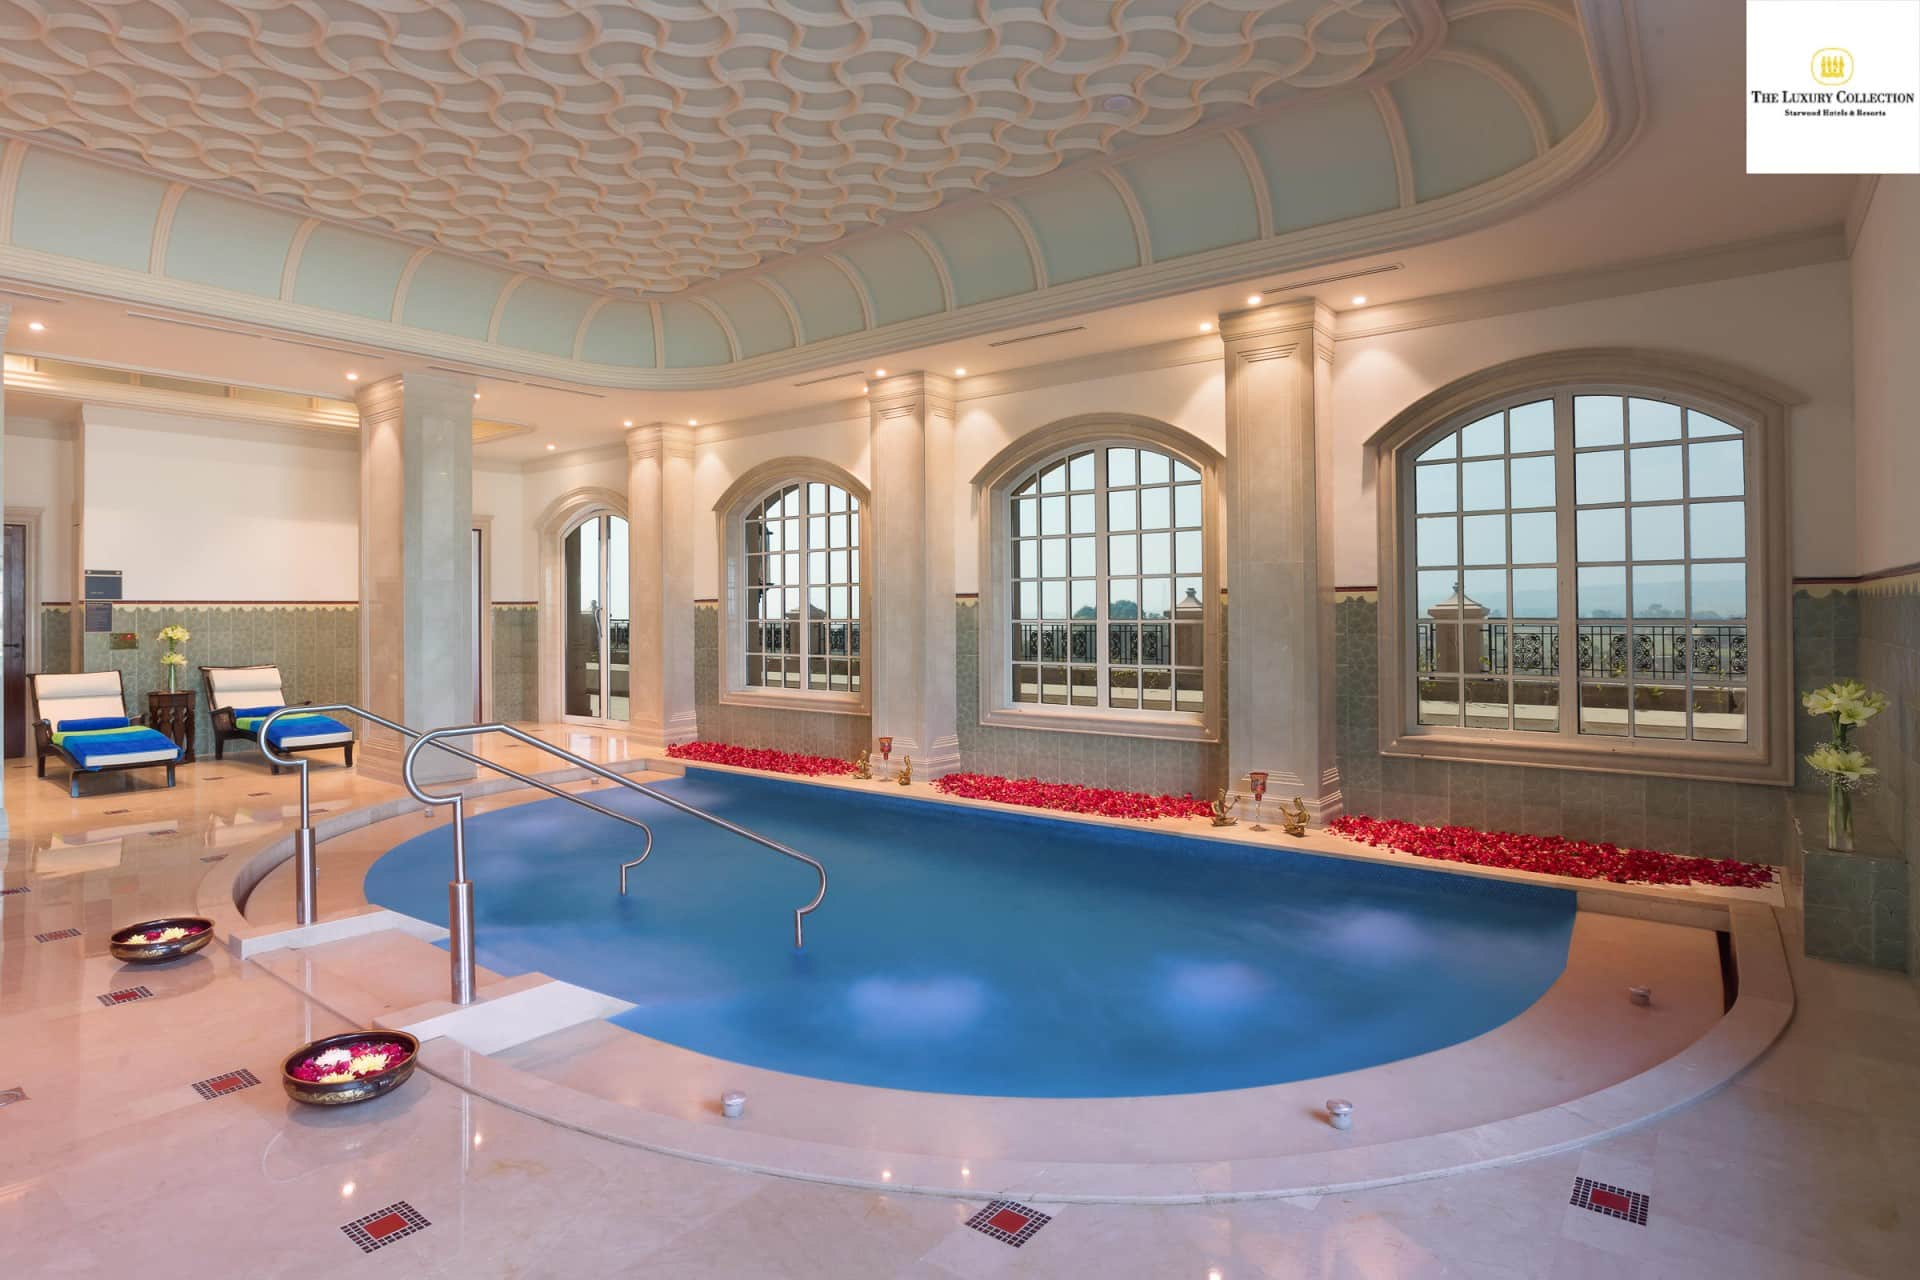 Best Architecture Photographer Delhi India   Collection of Luxury Jacuzzi Photography India